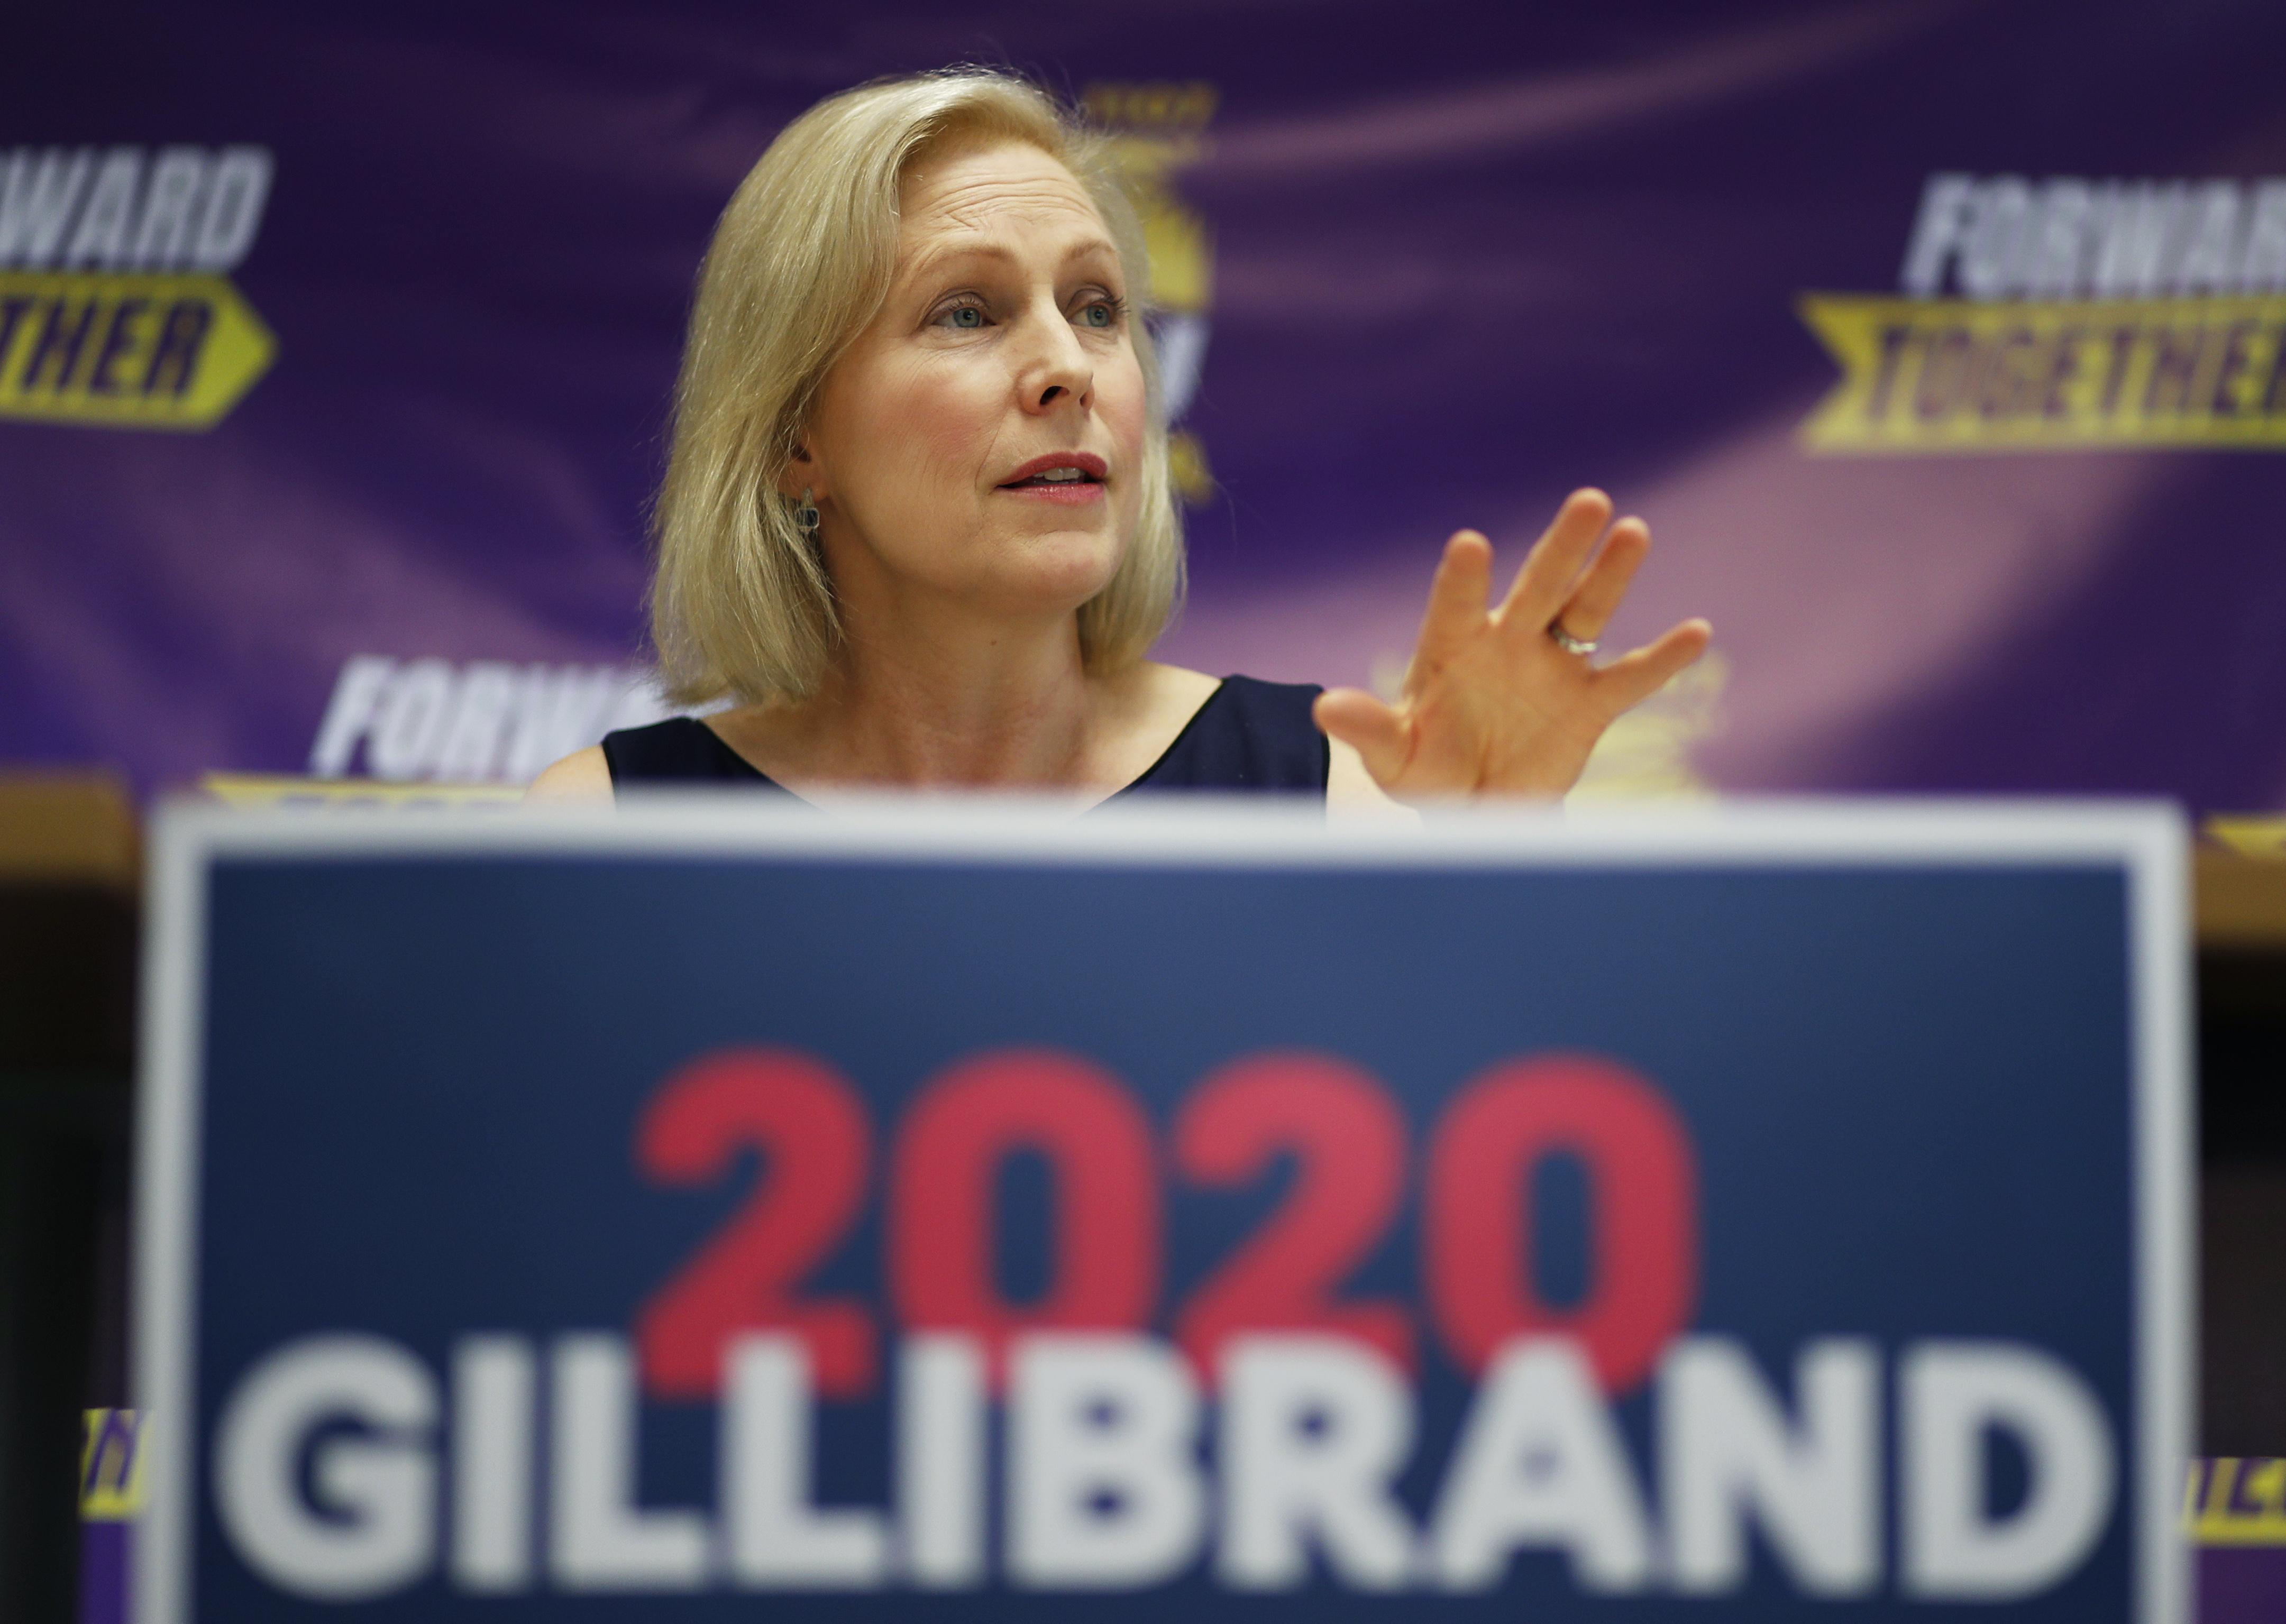 Rep. Steve King hits back at Kirsten Gillibrand, says she has 'ZERO' chance of Democratic nomination